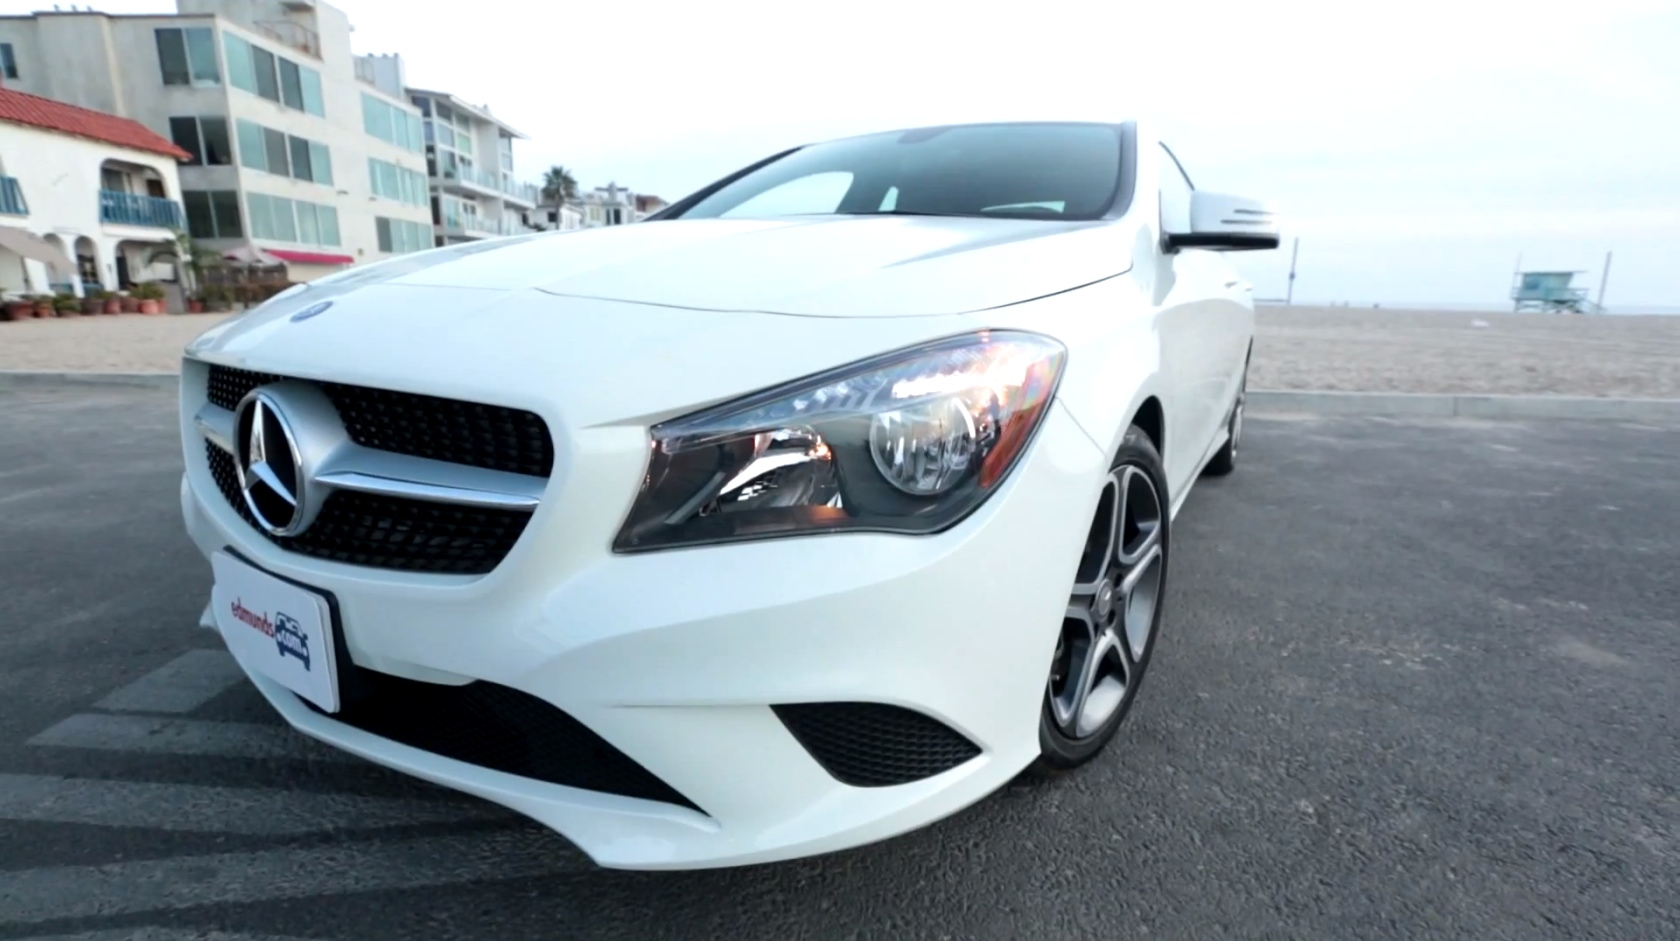 Mercedes benz cla 250 gets reviewed by edmund 39 s for Mercedes benz 250 cla